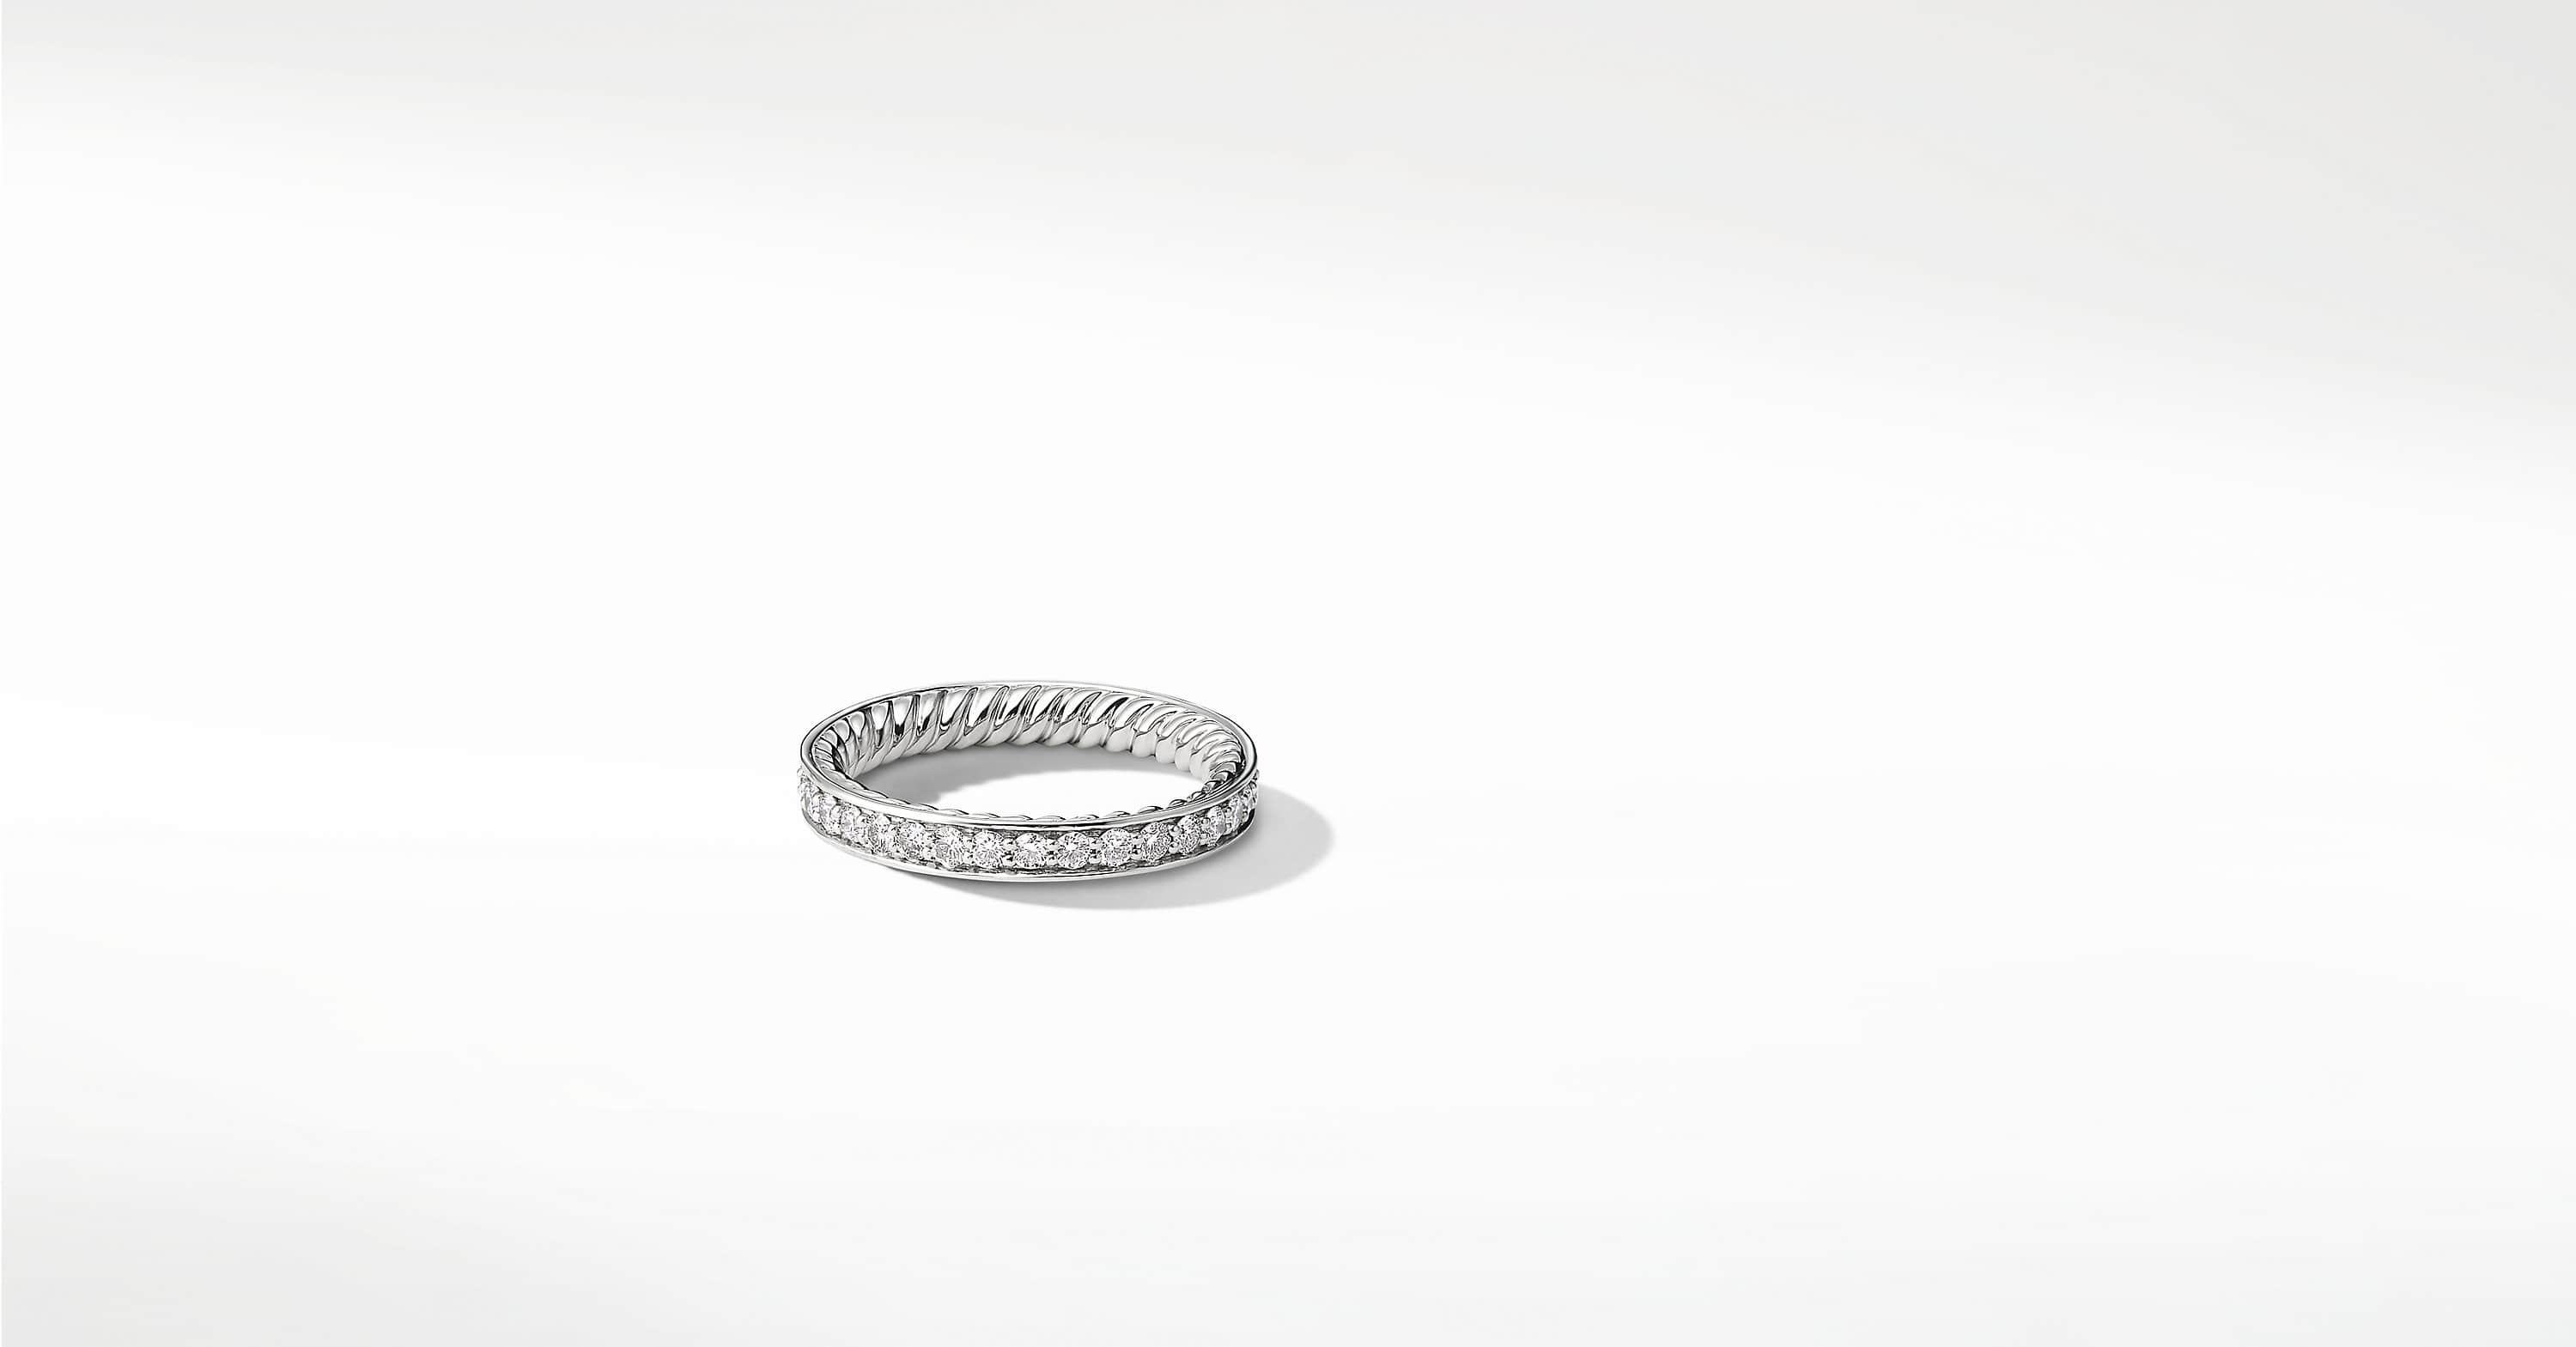 DY Eden Eternity Wedding Band with Diamonds in Platinum, 3mm